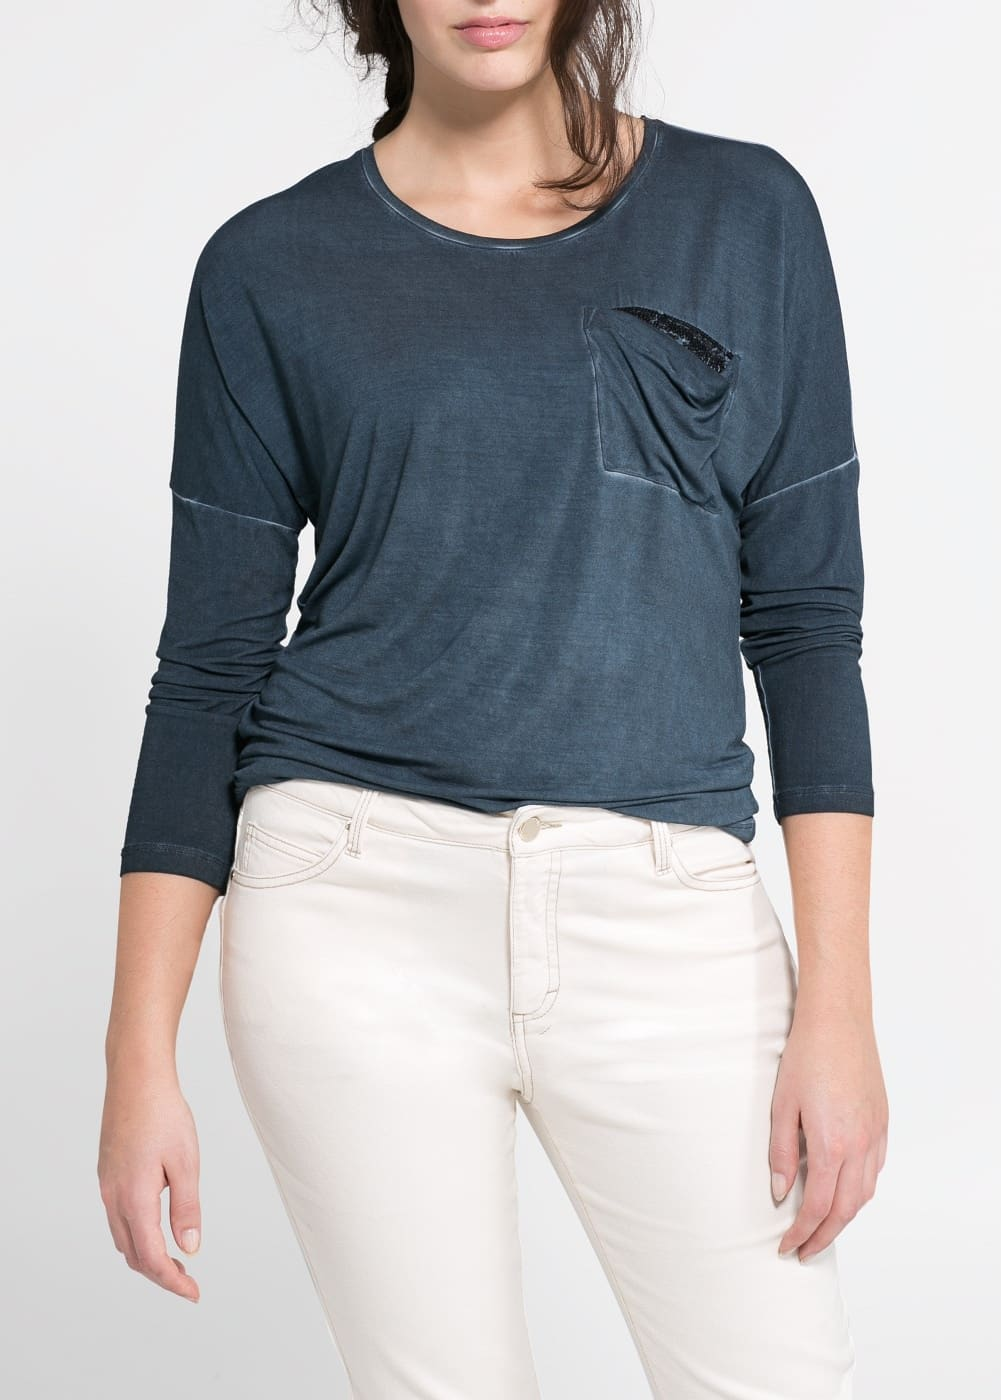 Sequin pocket t-shirt